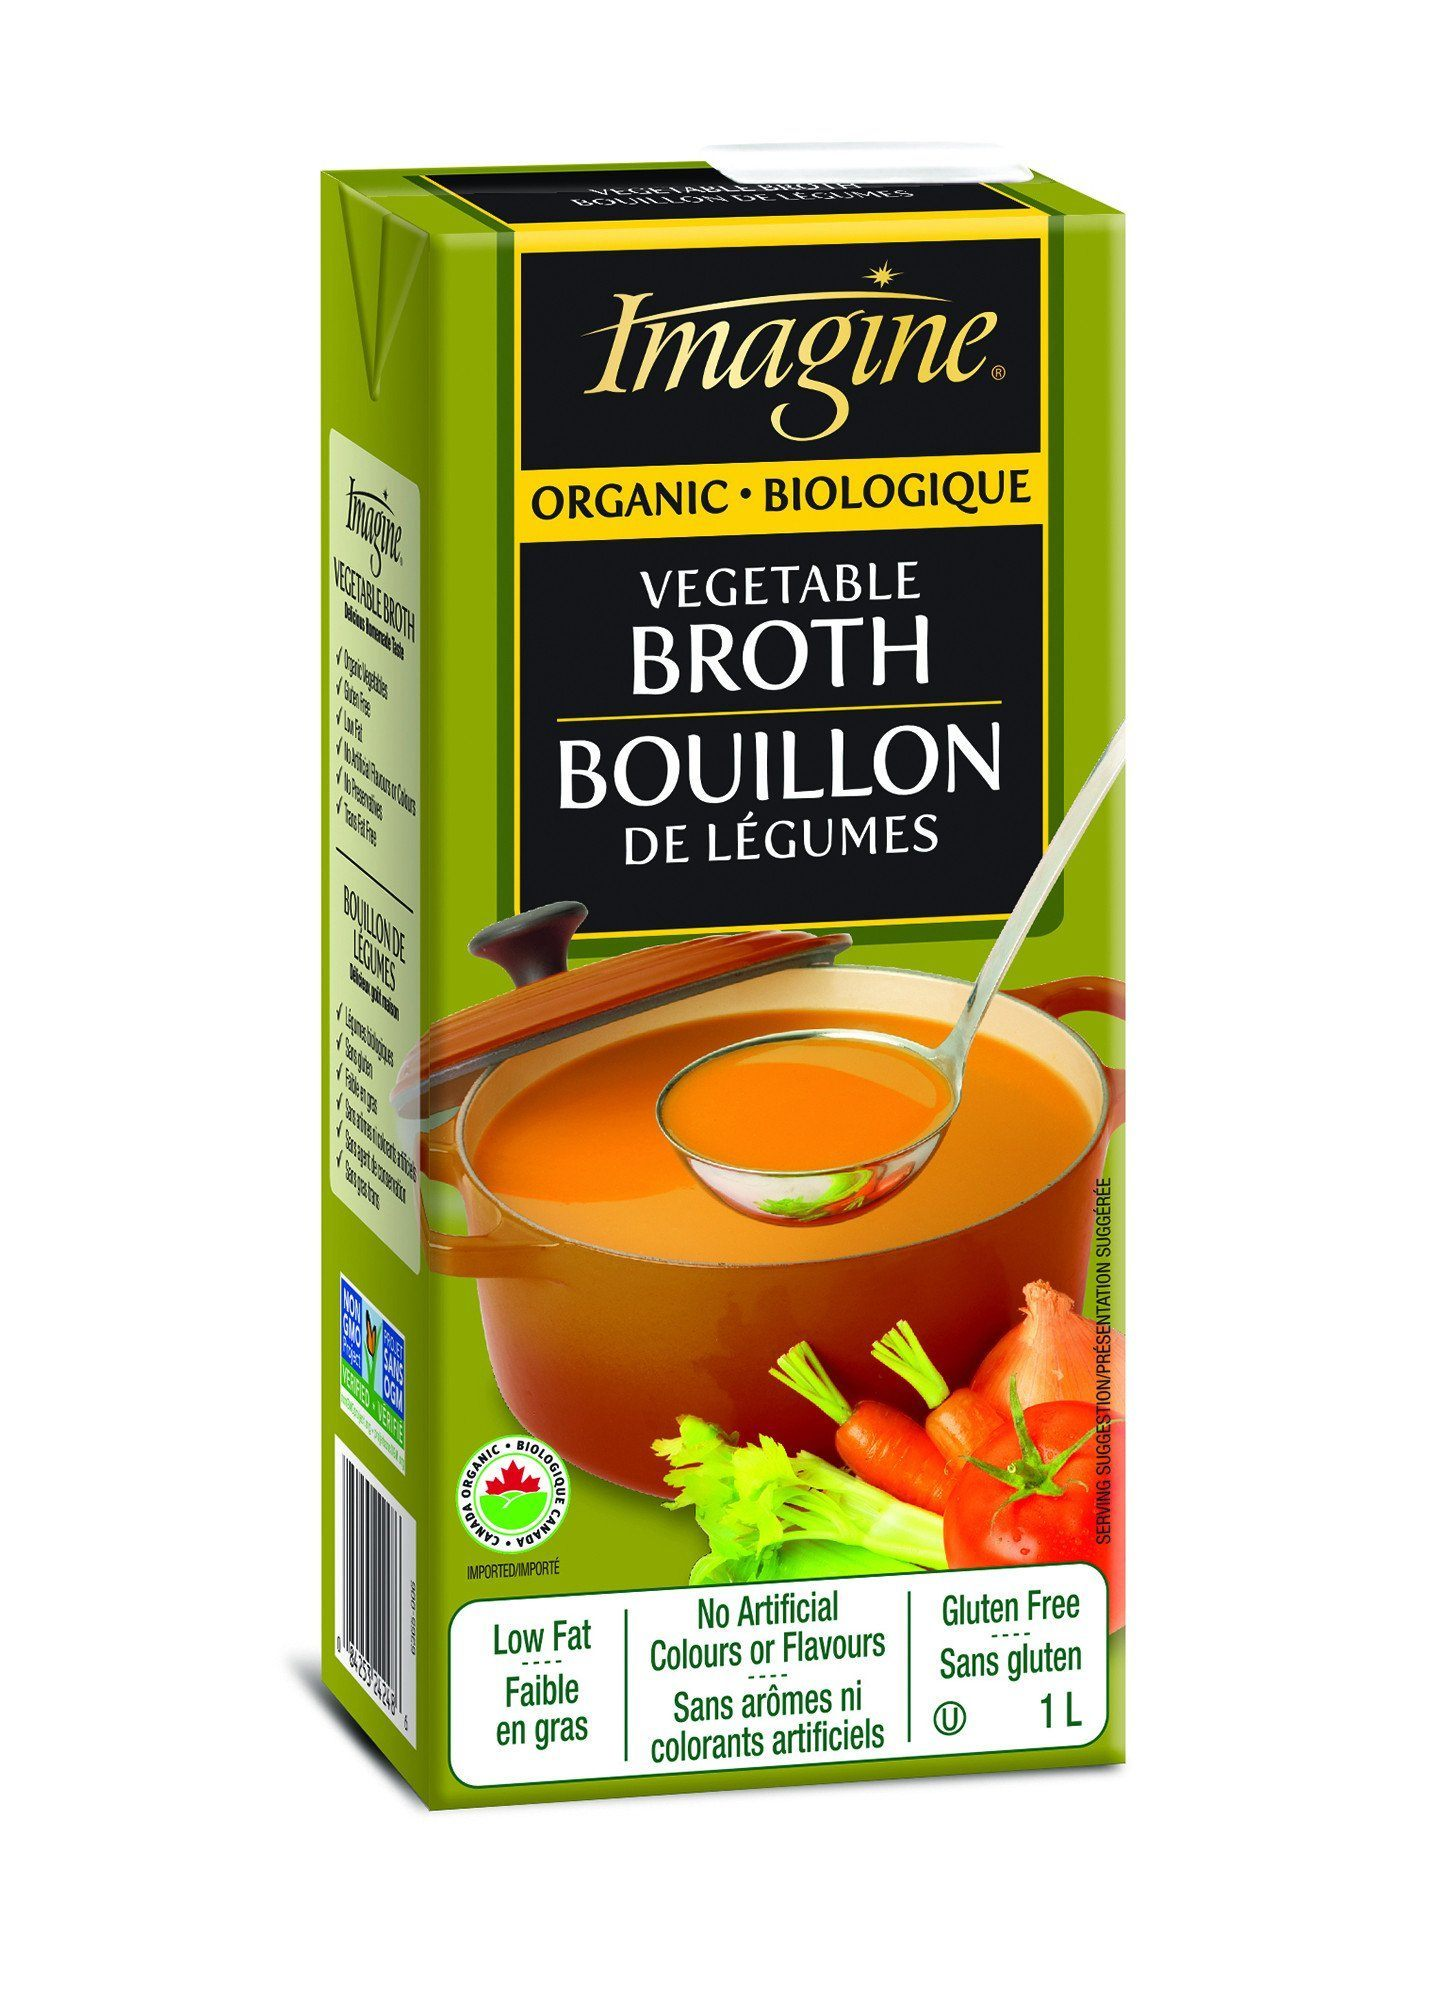 Food & Drink - Imagine Foods - Organic Vegetable Broth, 1L